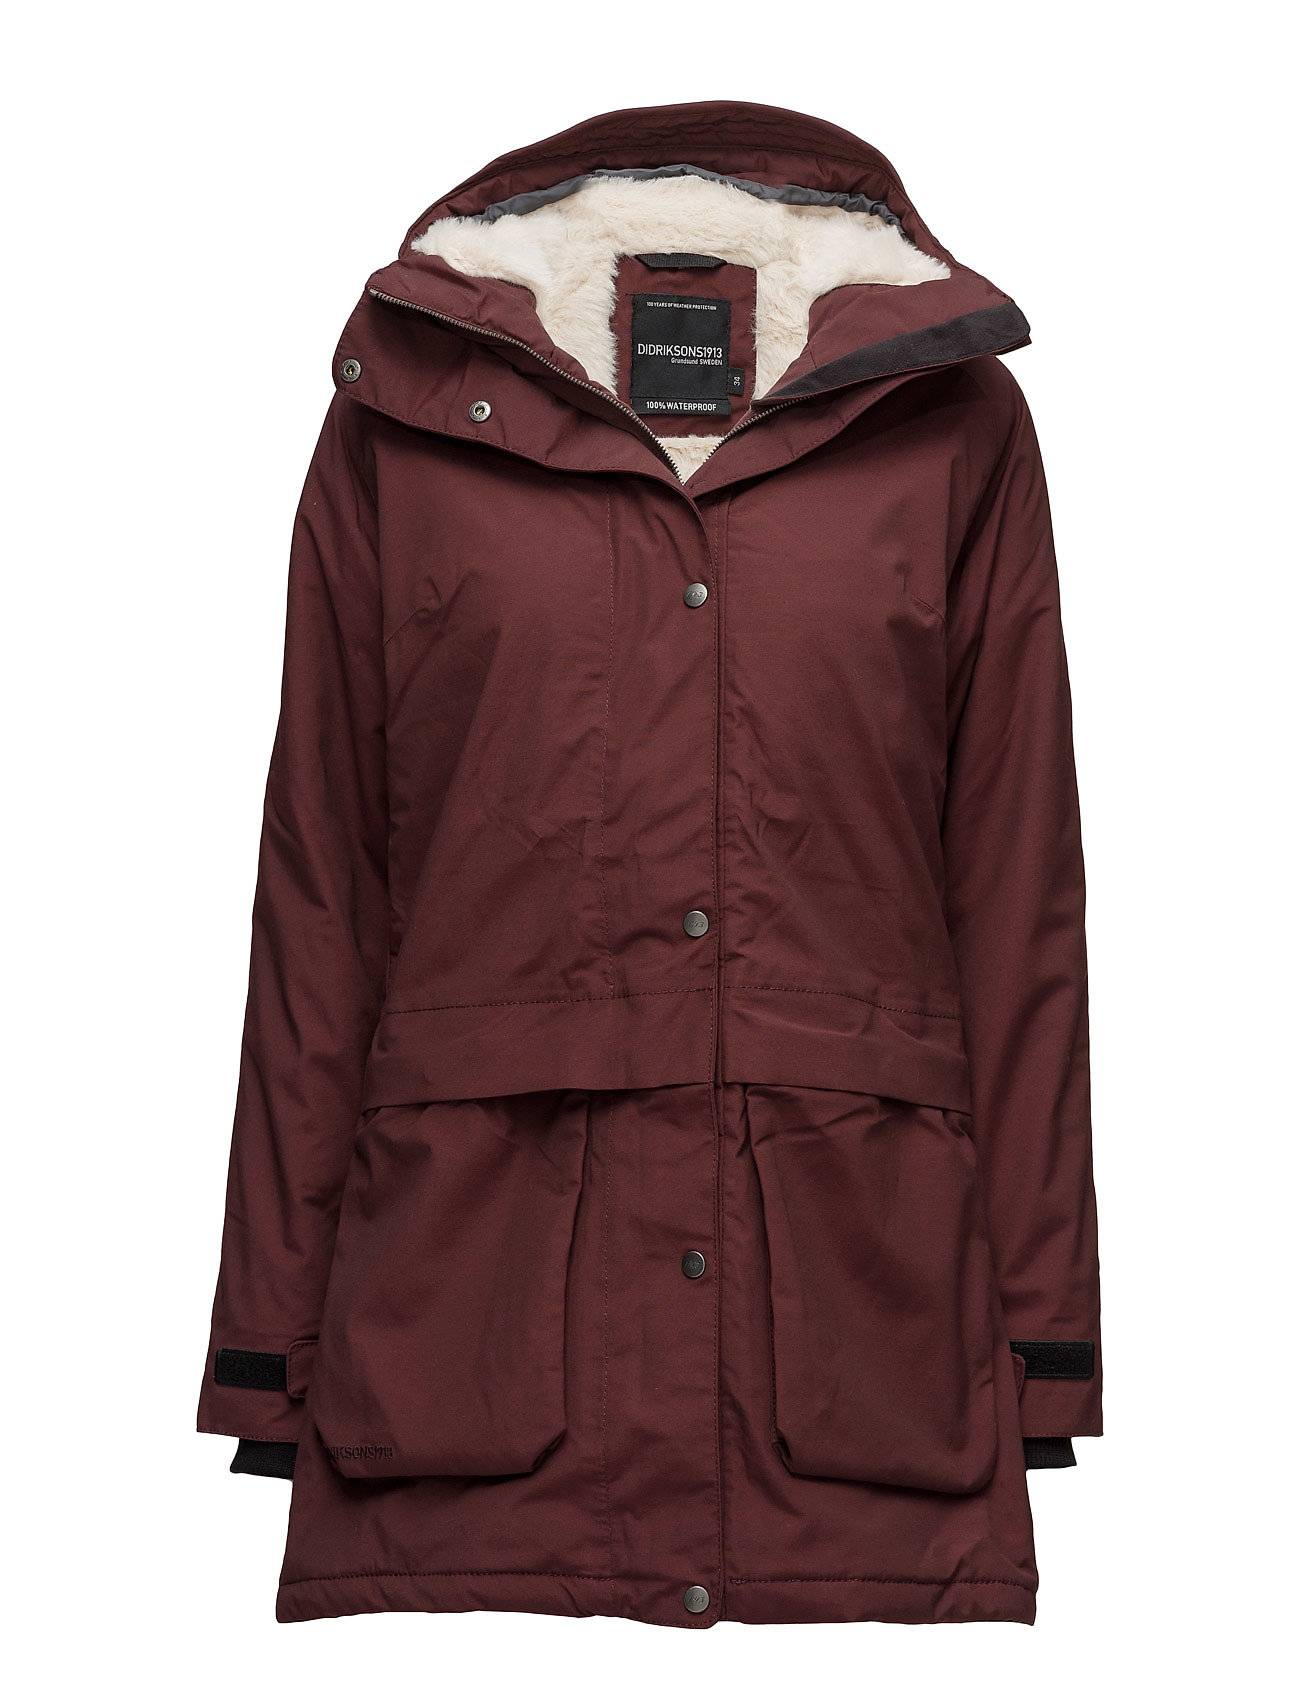 Didriksons Lykke Wns Parka